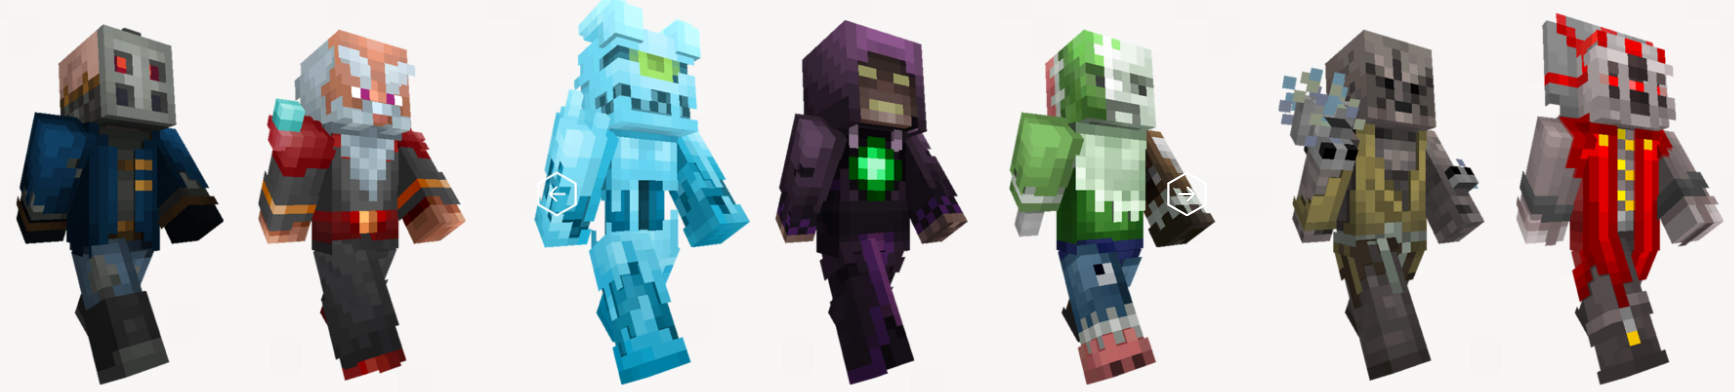 Minecraft skins villains